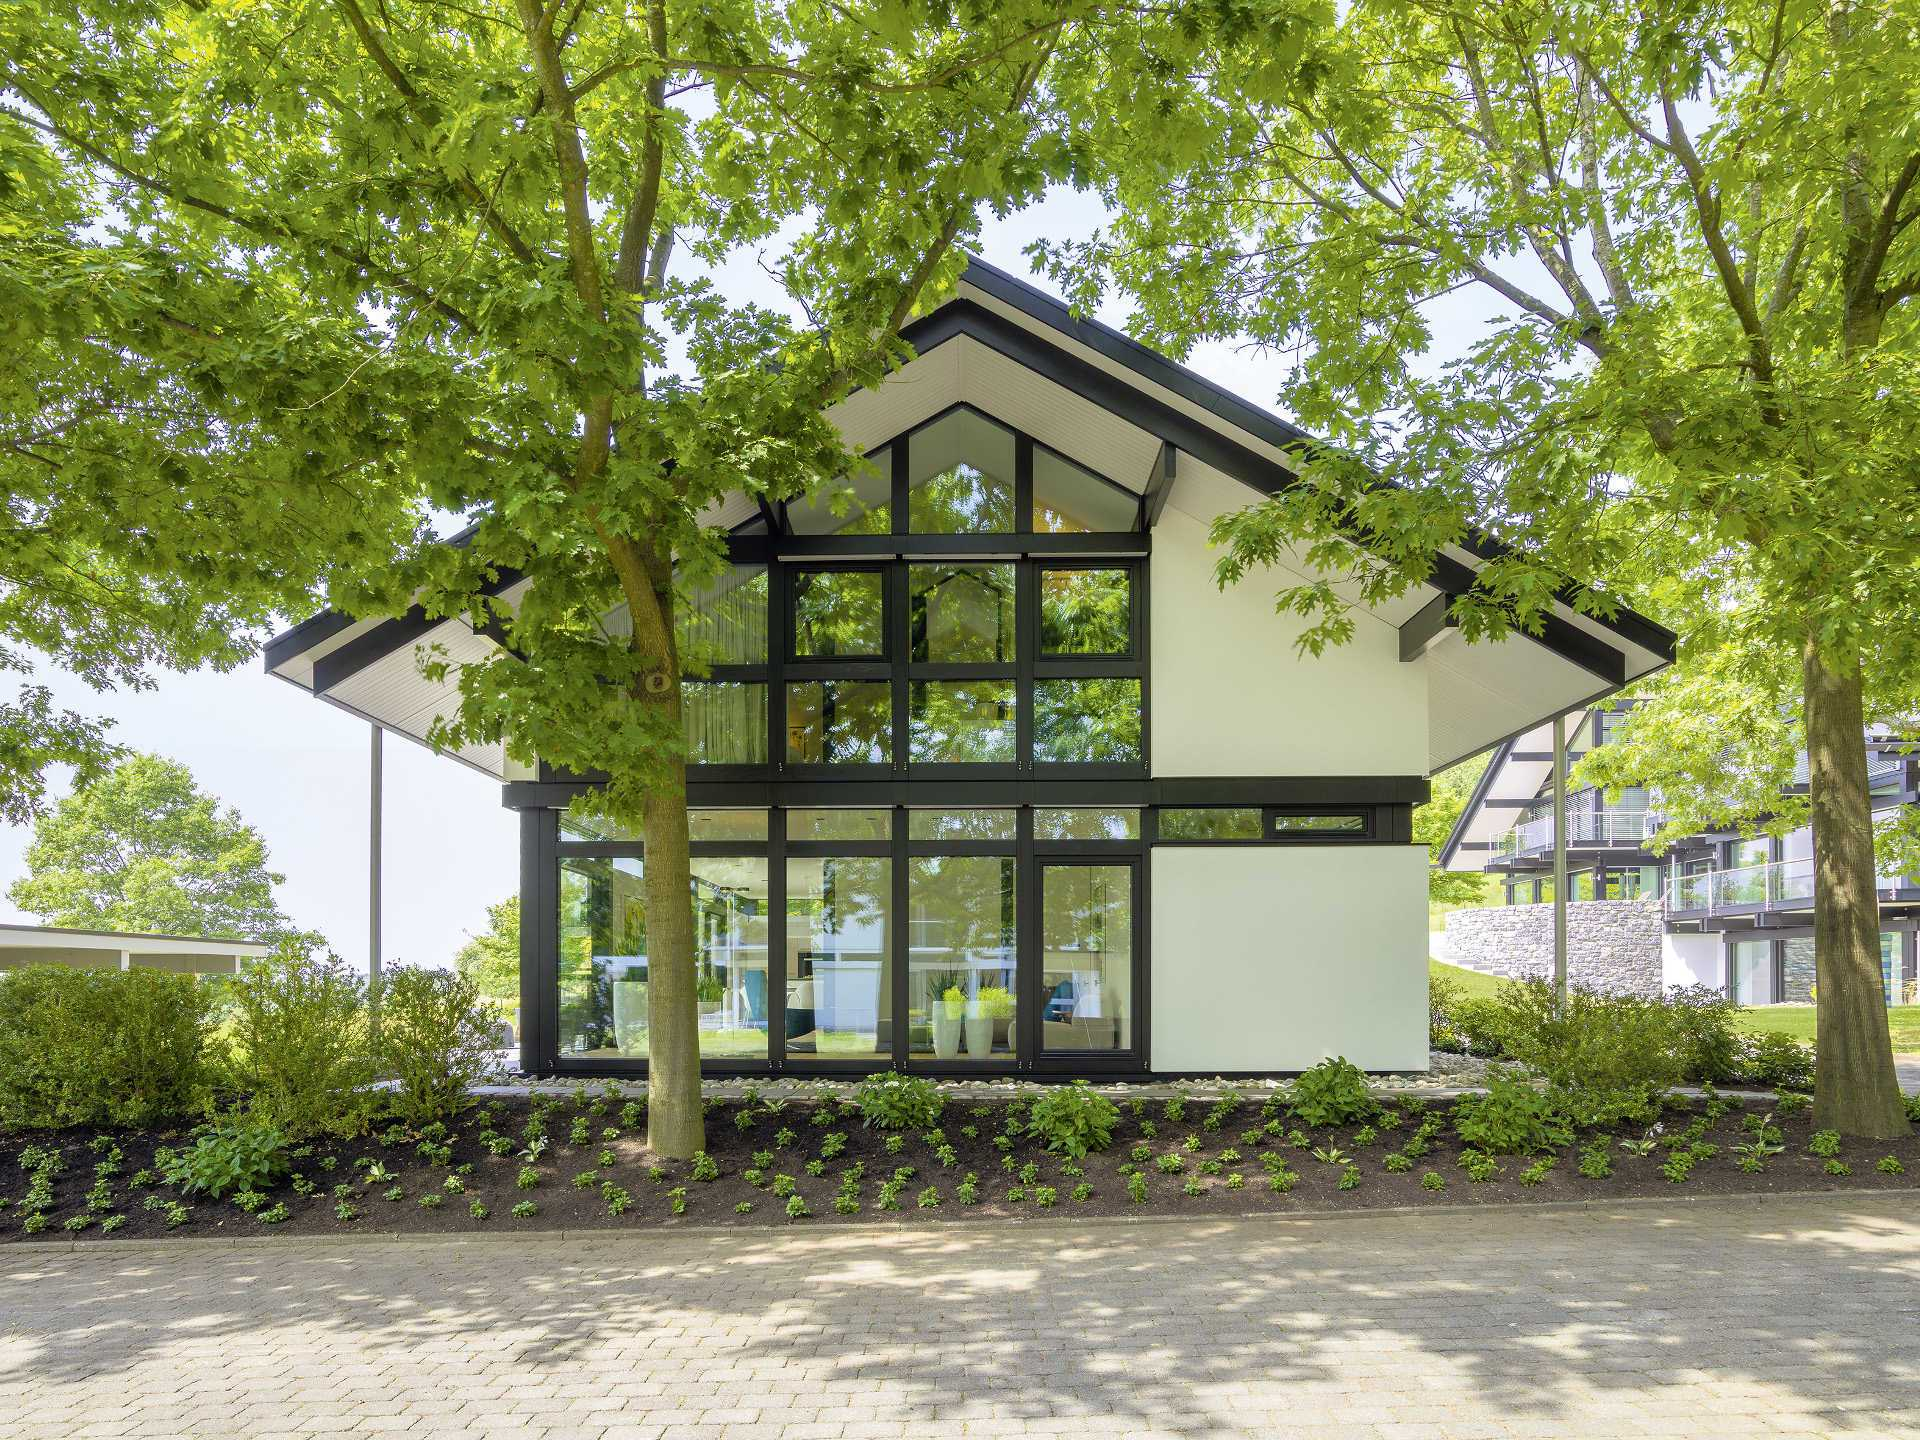 Magnificent Huf Haus Kosten Collection Of Cheap Modum Von With